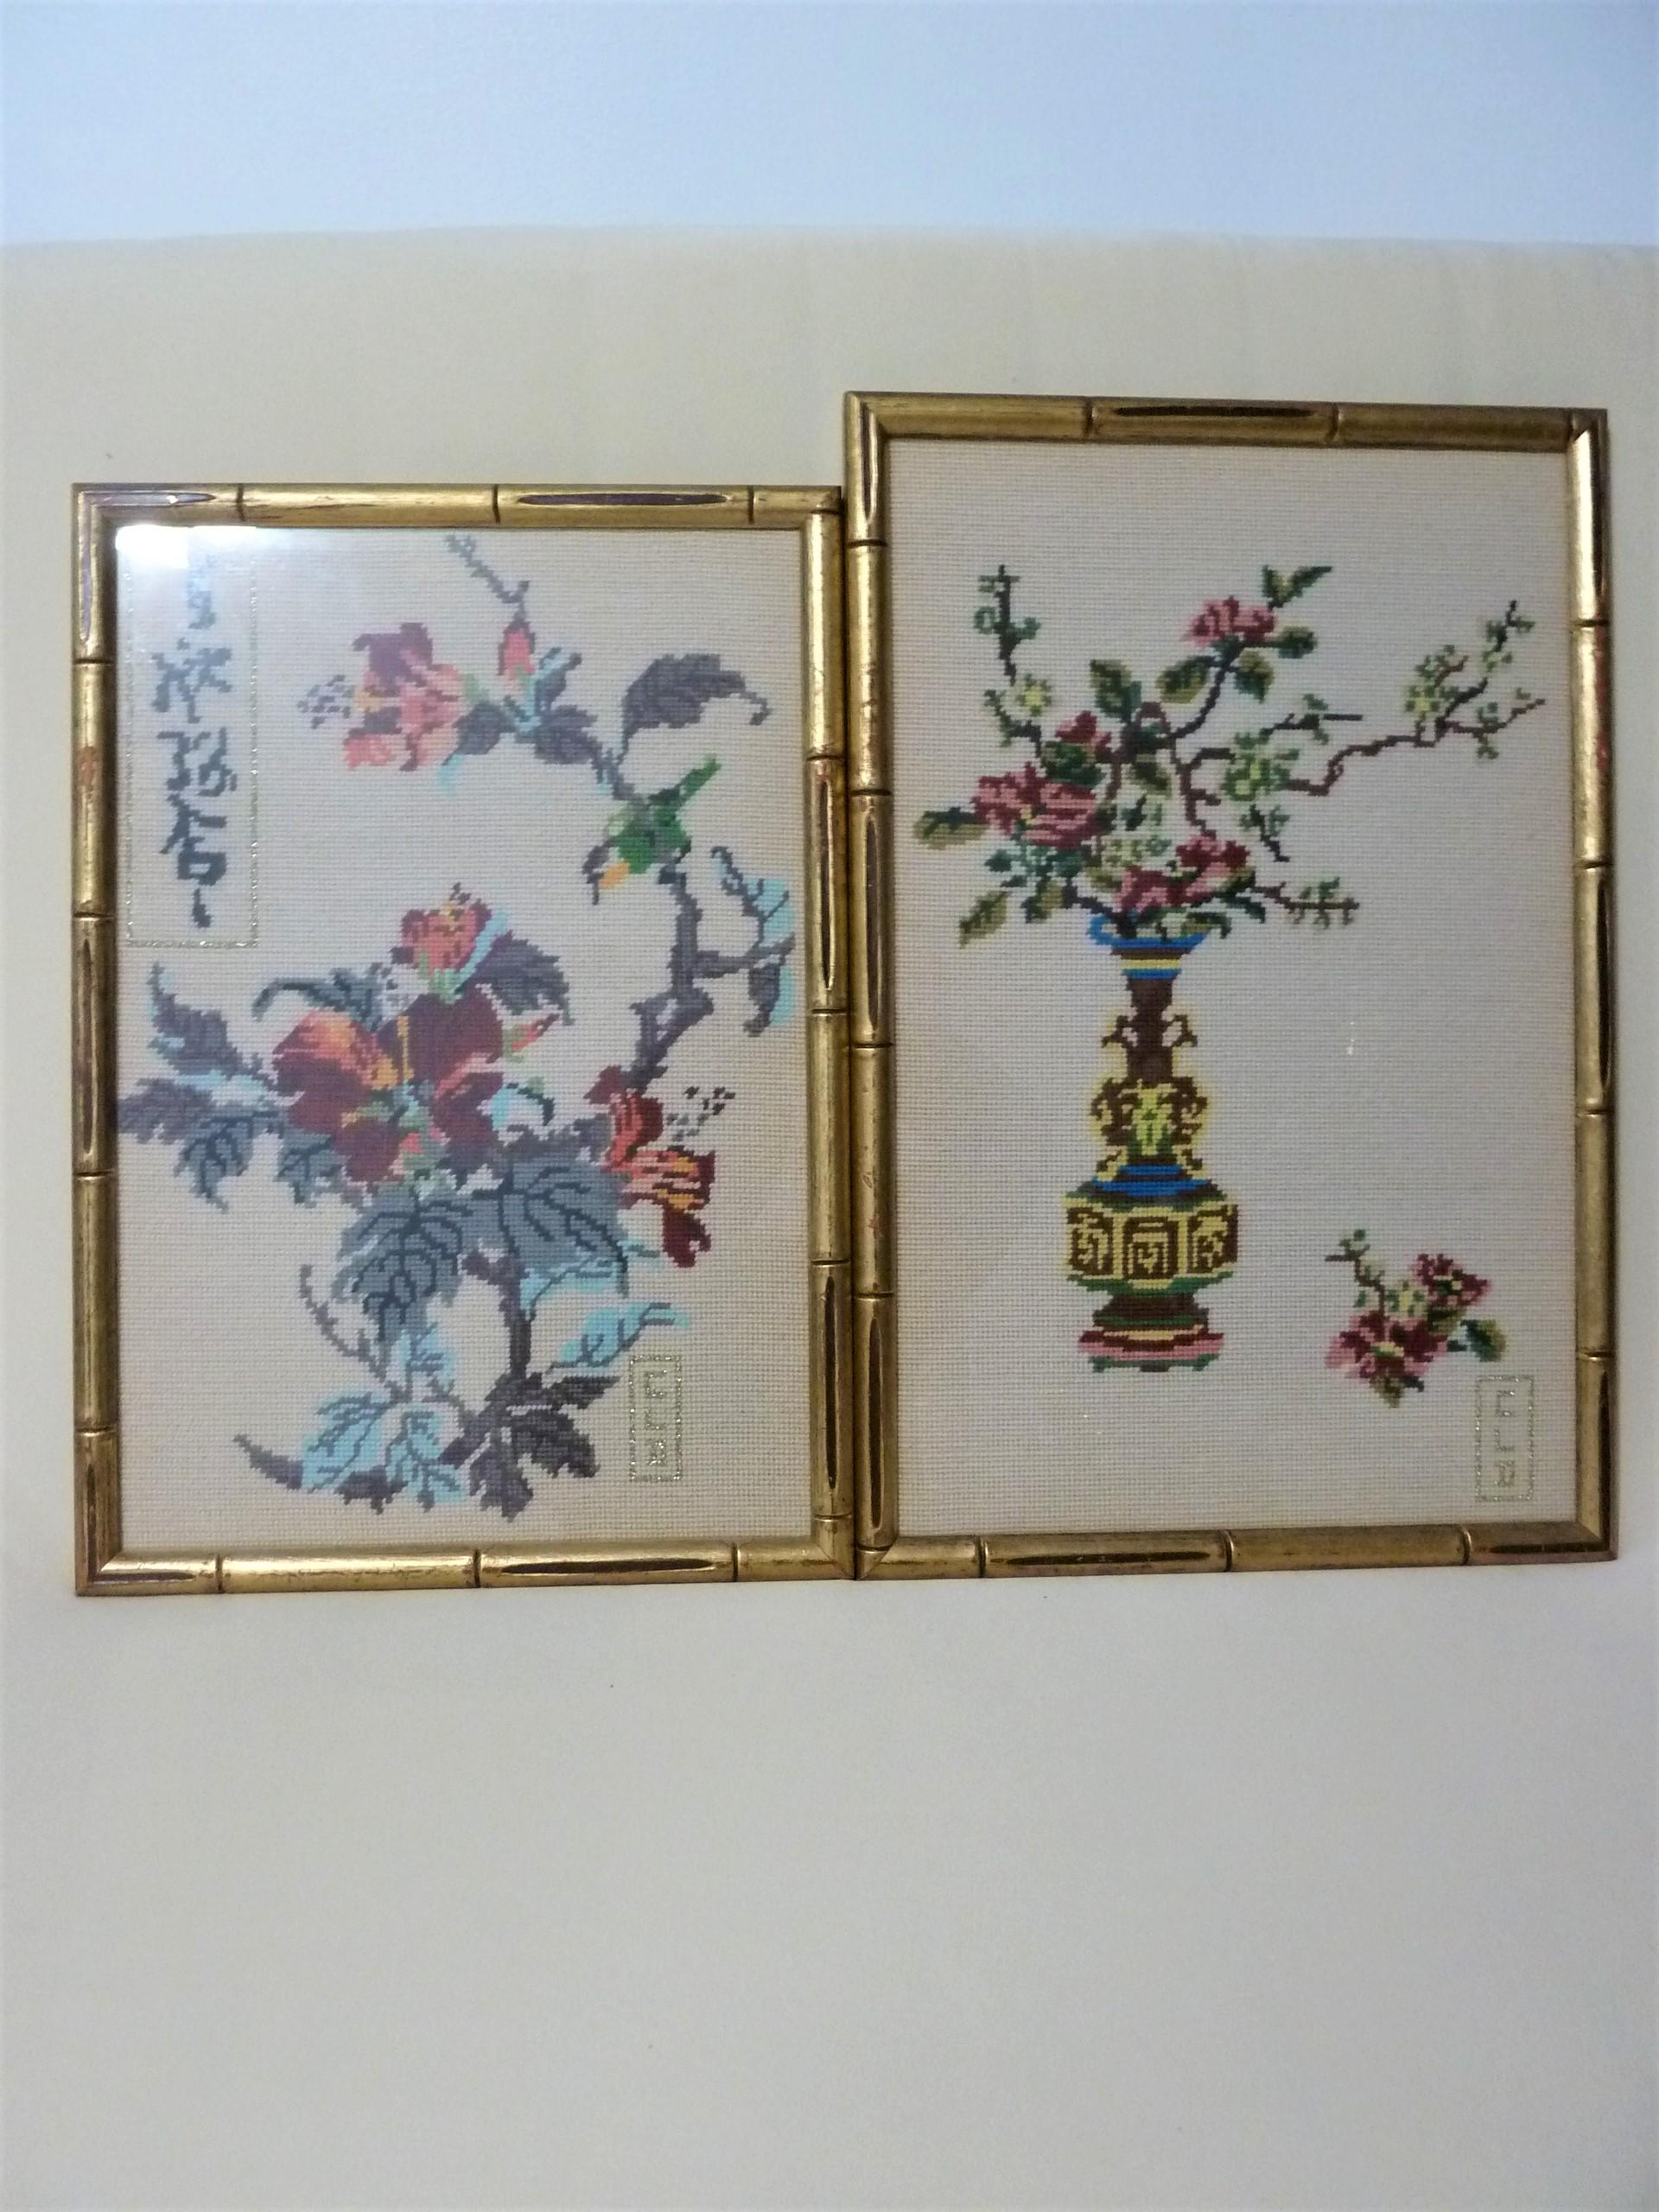 2 ANTIQUE CHINESE SILK  NEEDLEPOINT IN WOOD FRAME appraisal